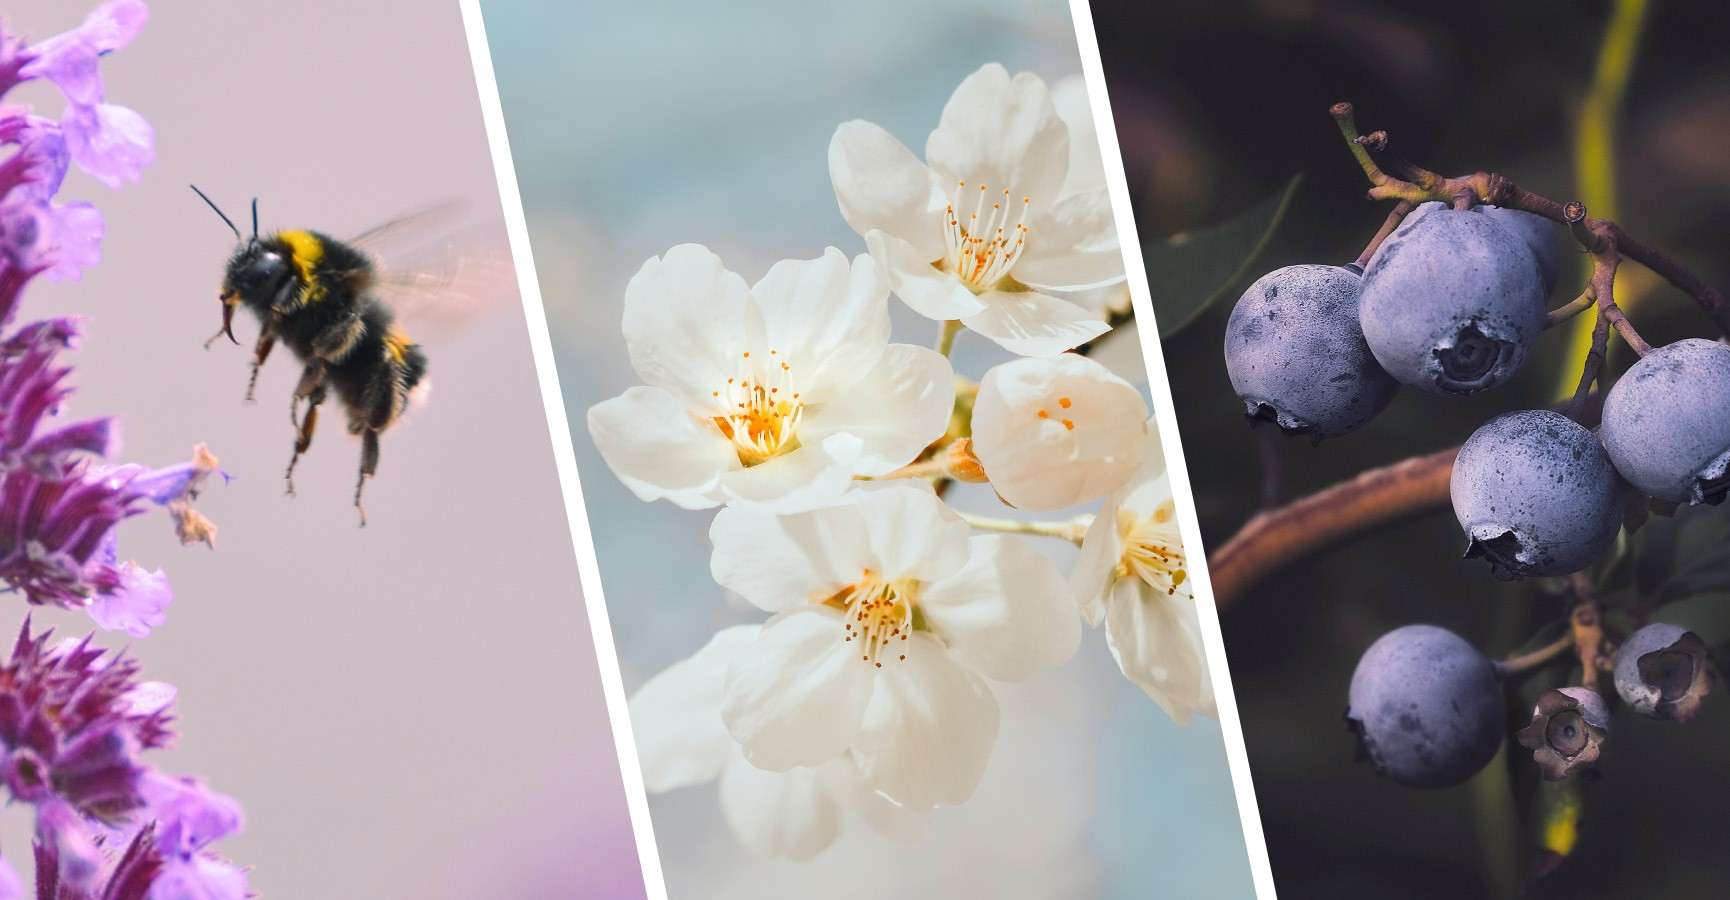 Images of a bumblebee, apple blossoms and organic blueberries